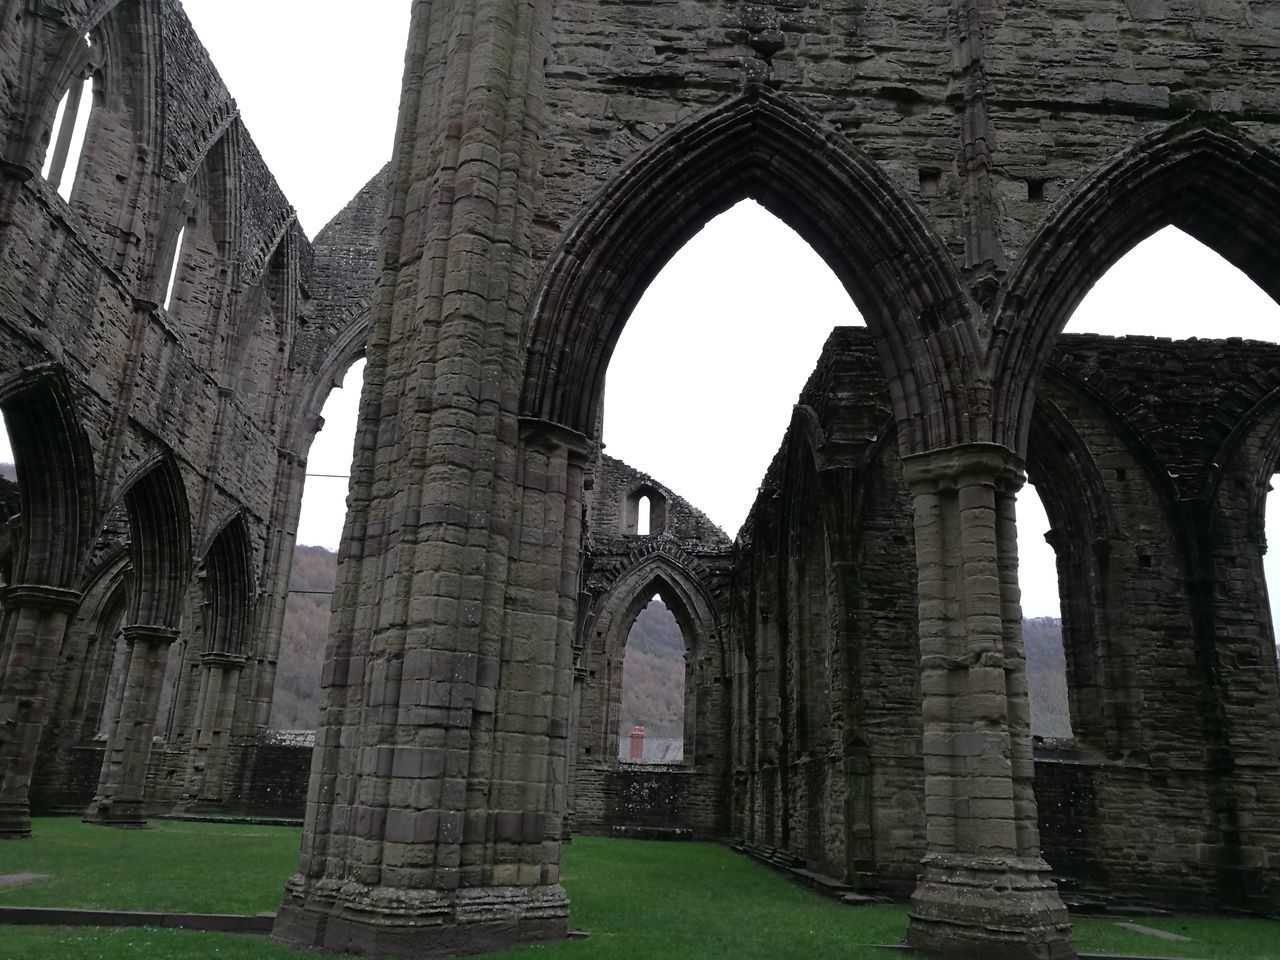 History Architecture Built Structure Old Ruin Arch Ancient Abbey Outdoors Ancient Civilization Architectural Column No People Building Exterior Beauty Of Decay Architecture Decay And Dereliction